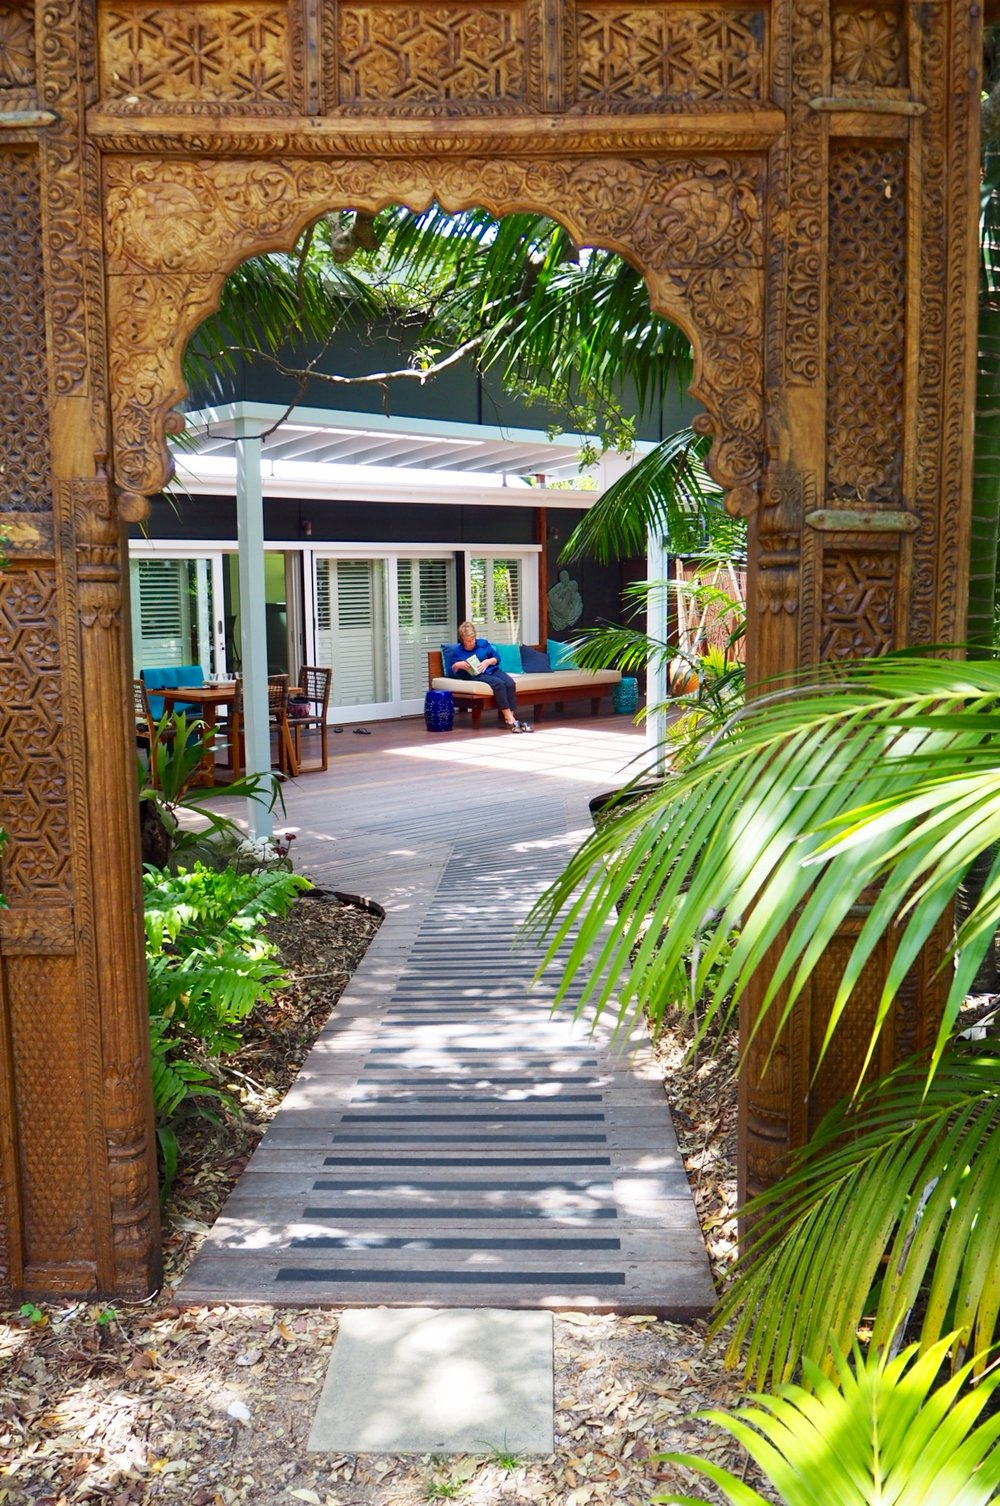 The entrance way to Blue Peter's Beach House; a quintessential Lord Howe Island building now with a new lease of life as a luxe private beach house.